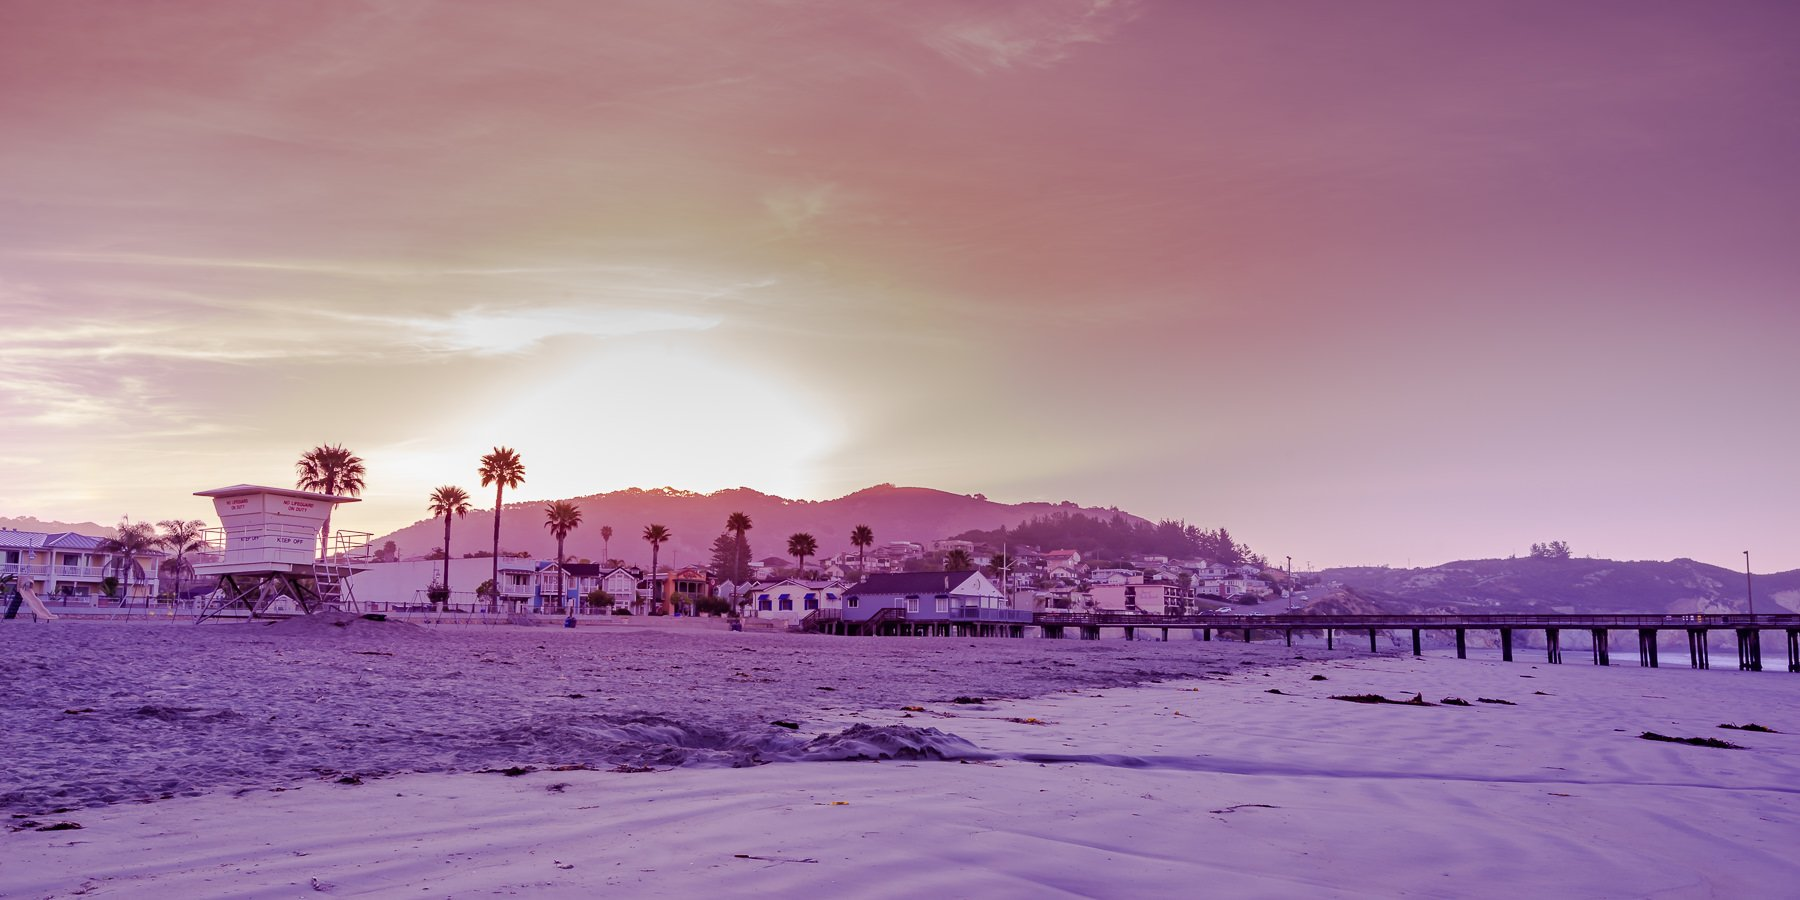 Sunrise over a California Beach with Lifeguard hut and palm trees